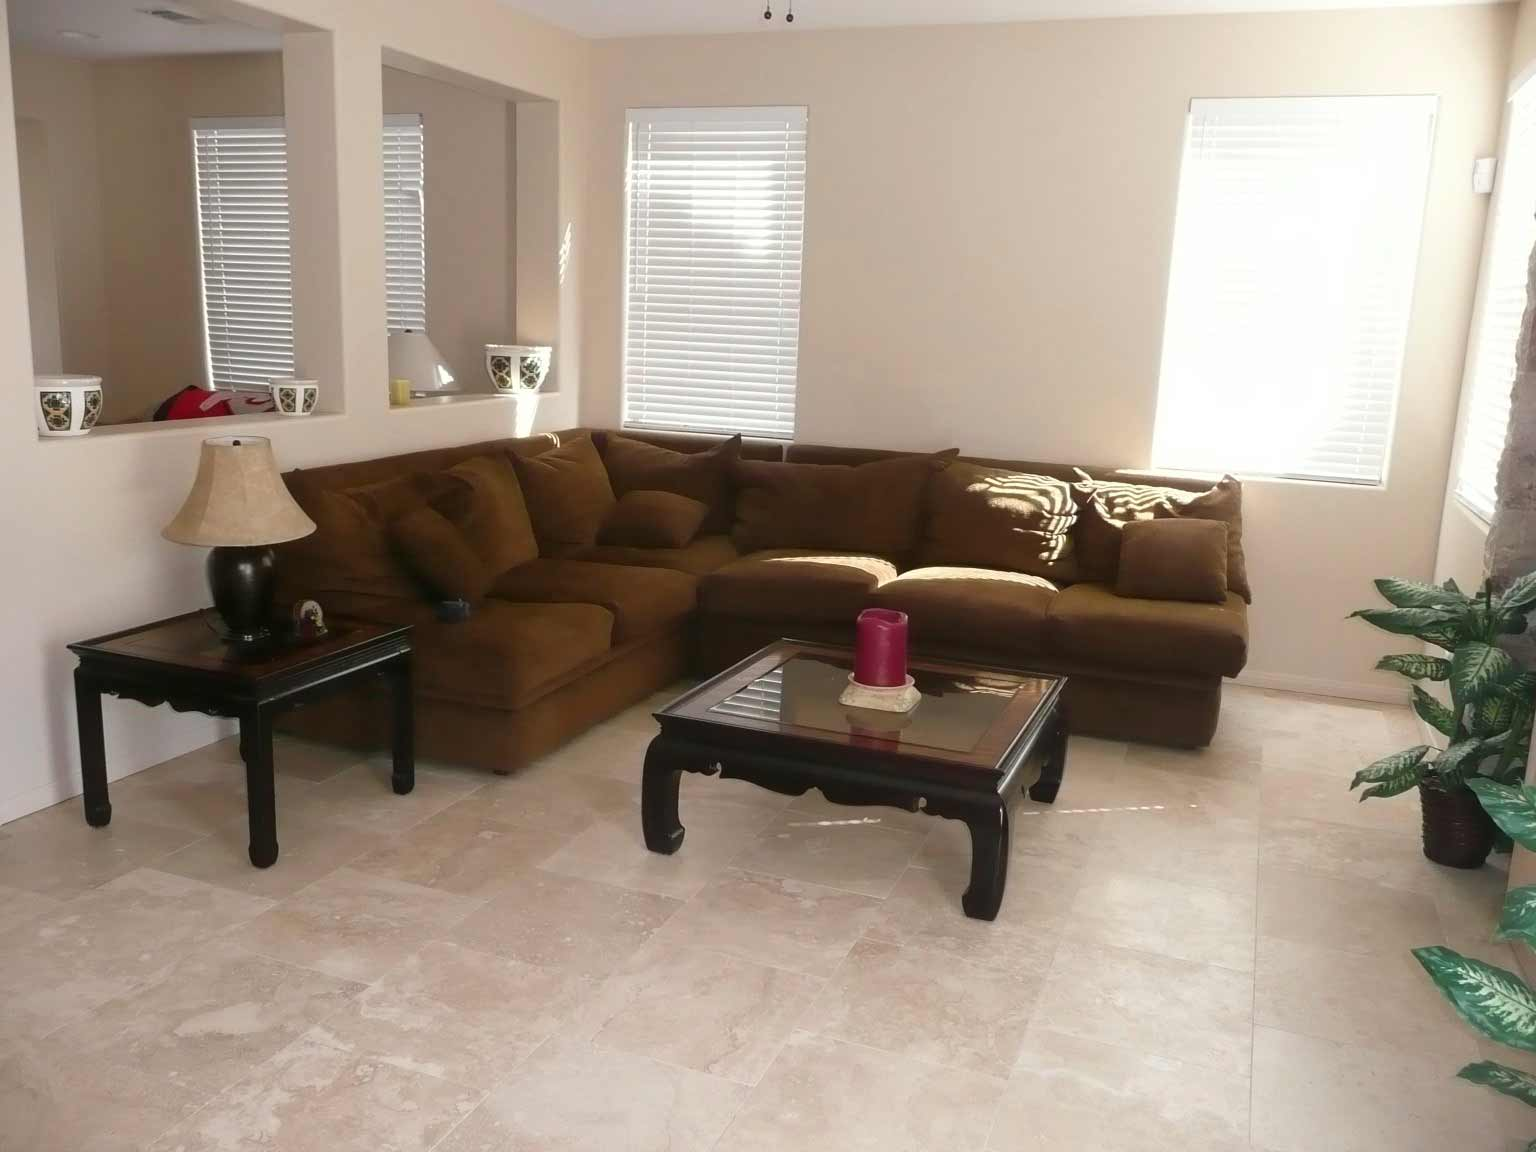 furniture in small living room las vegas cheap living room furniture ...